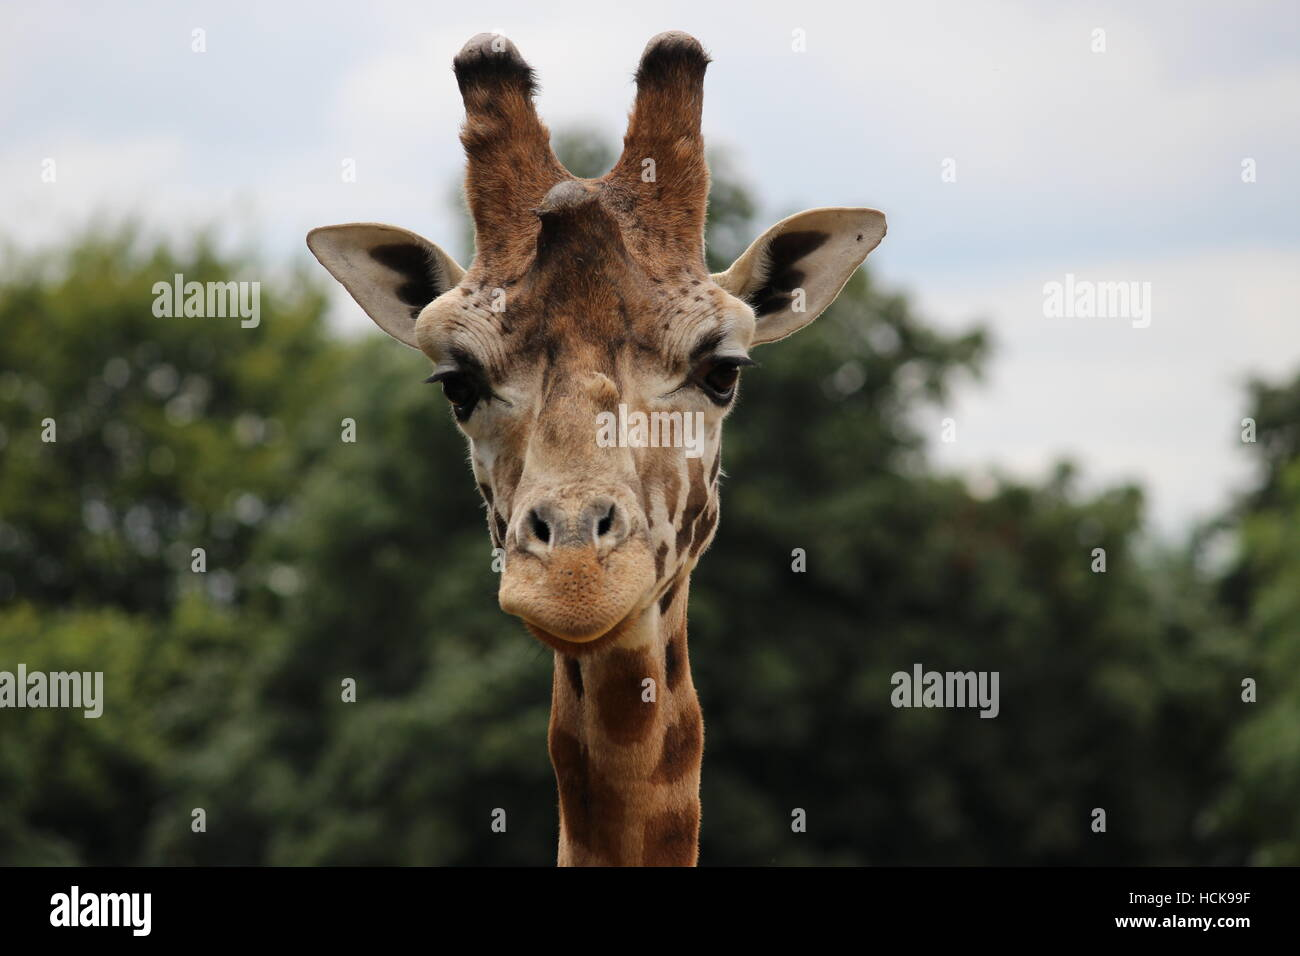 Portrait de girafe jeune adolescent fier sourire tête headshot Cotswold Wildlife Park Photo Stock